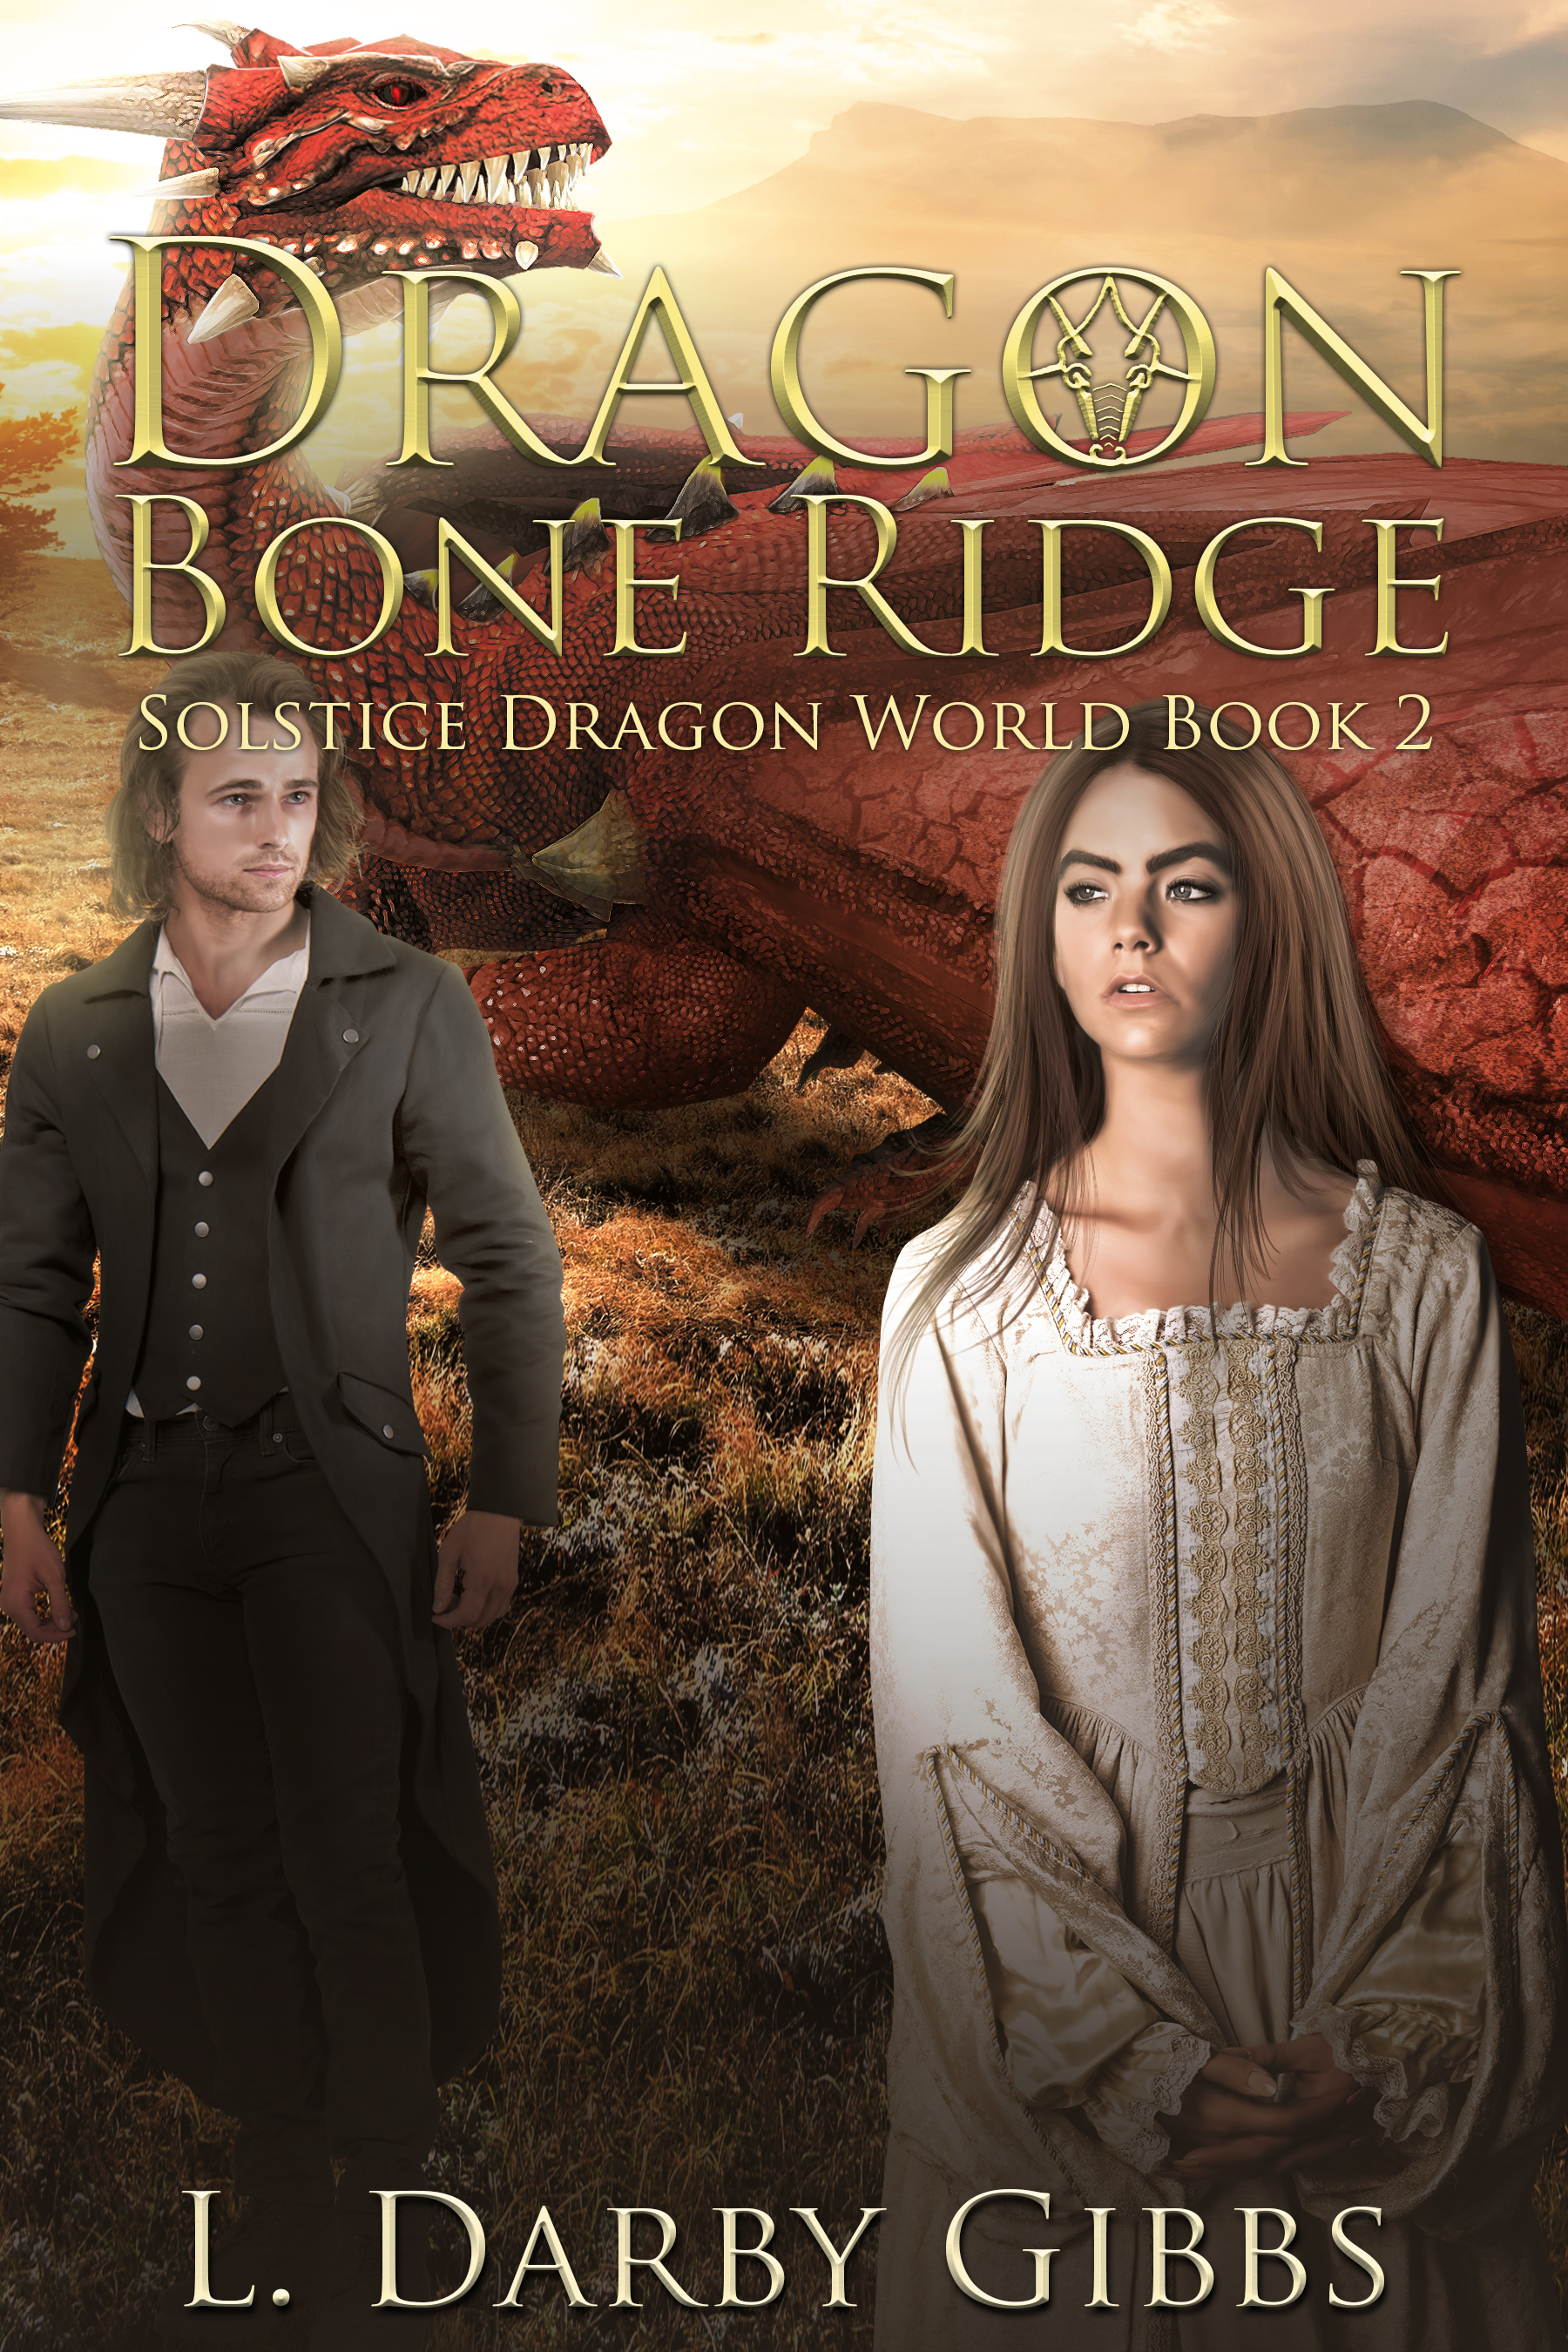 Dragon bone ridge